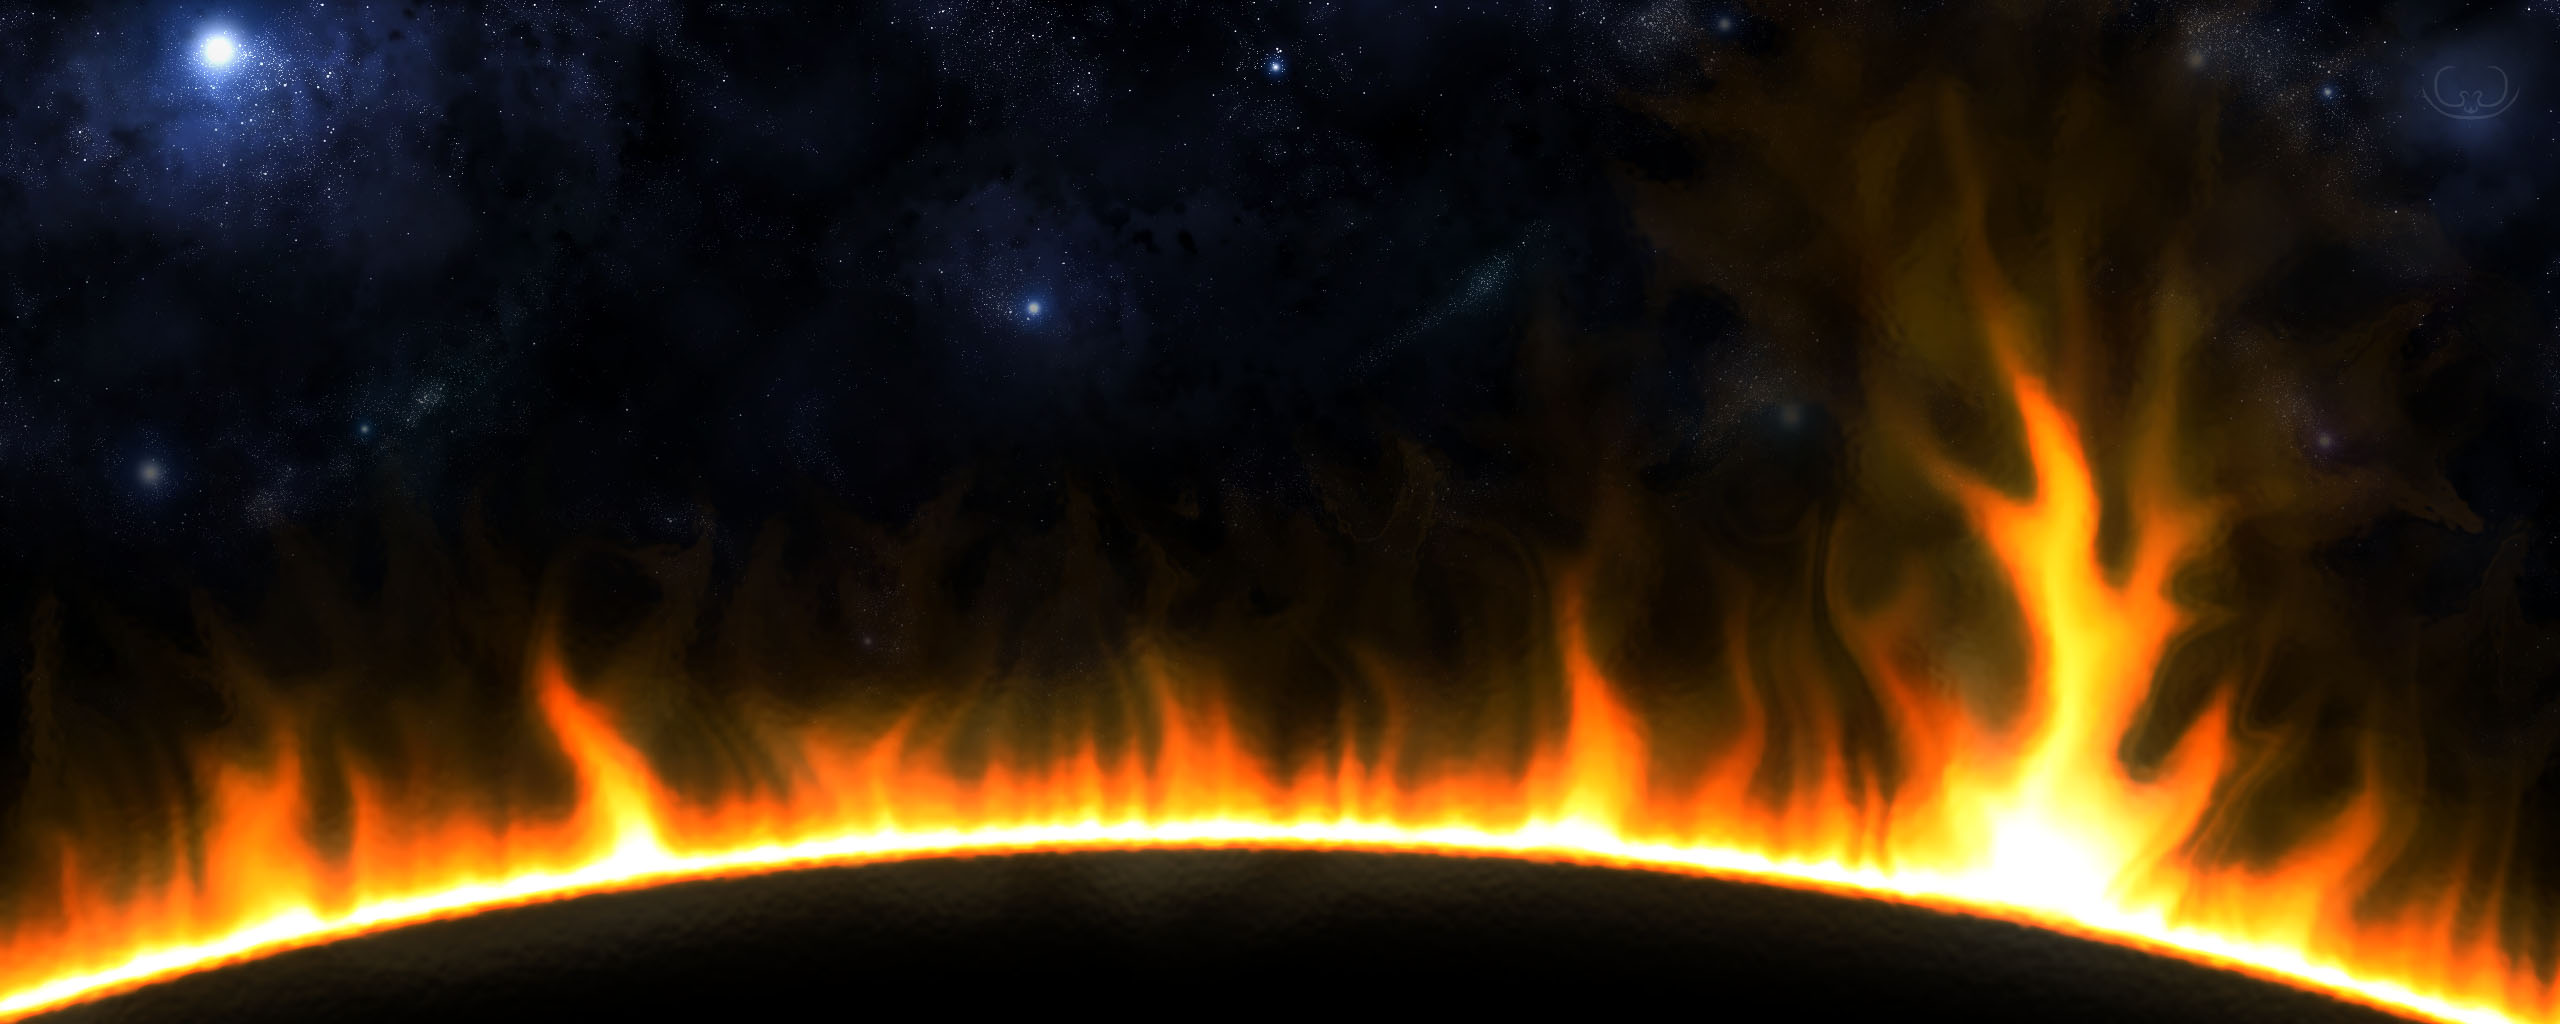 Fire PPT Backgrounds